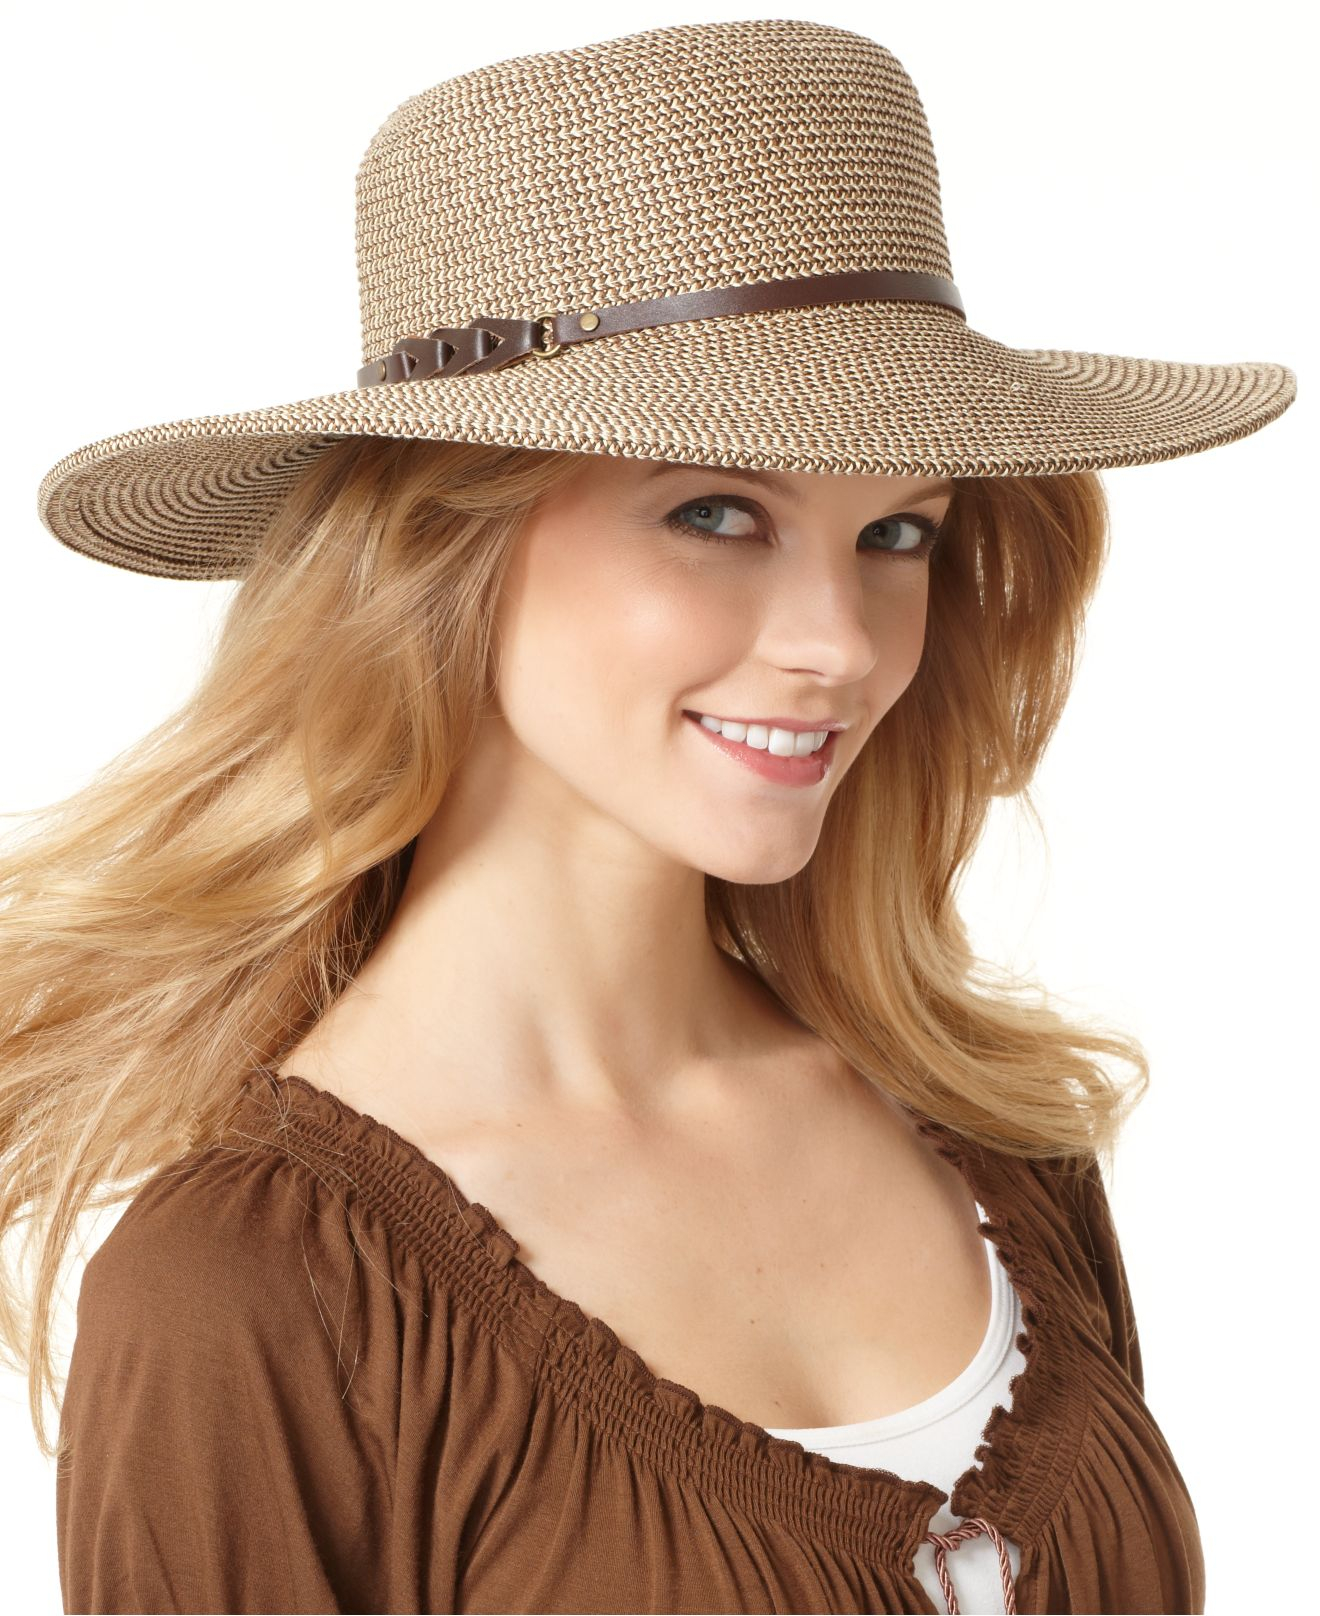 6ec4cc7197b Lyst - Nine West Packable Straw Floppy Hat in Natural